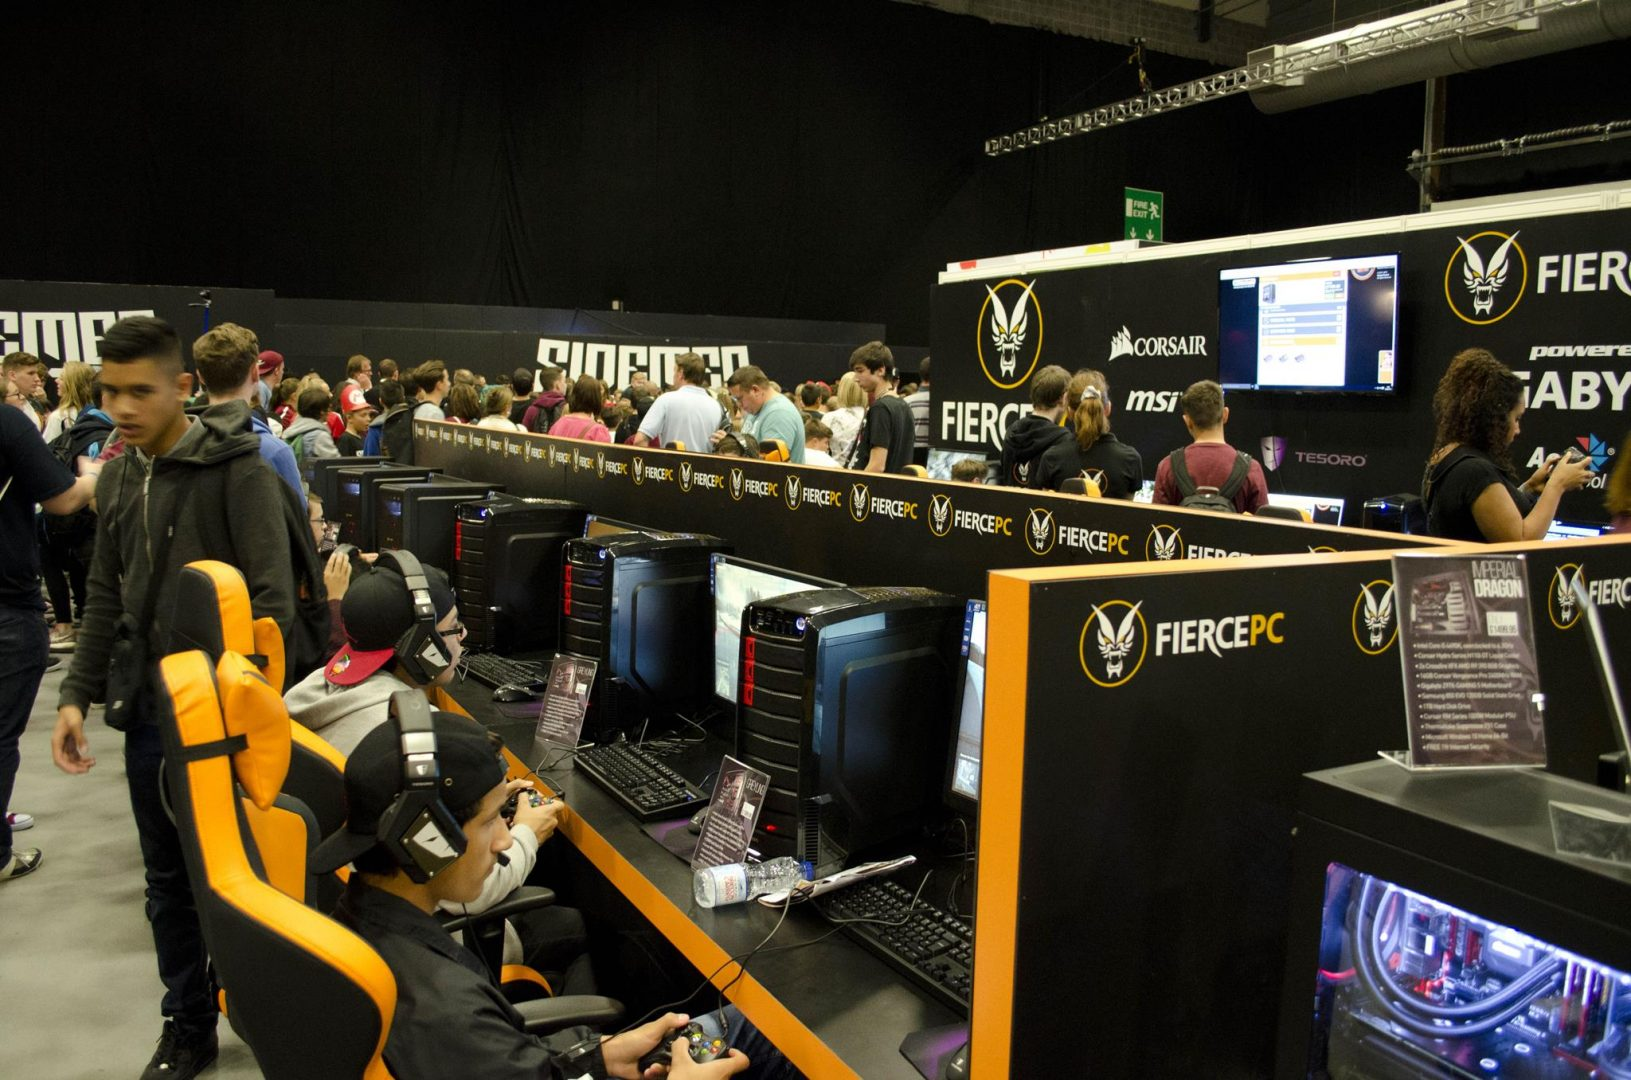 Fierce PC at Multiplay Insomnia Gaming Festival I55_5